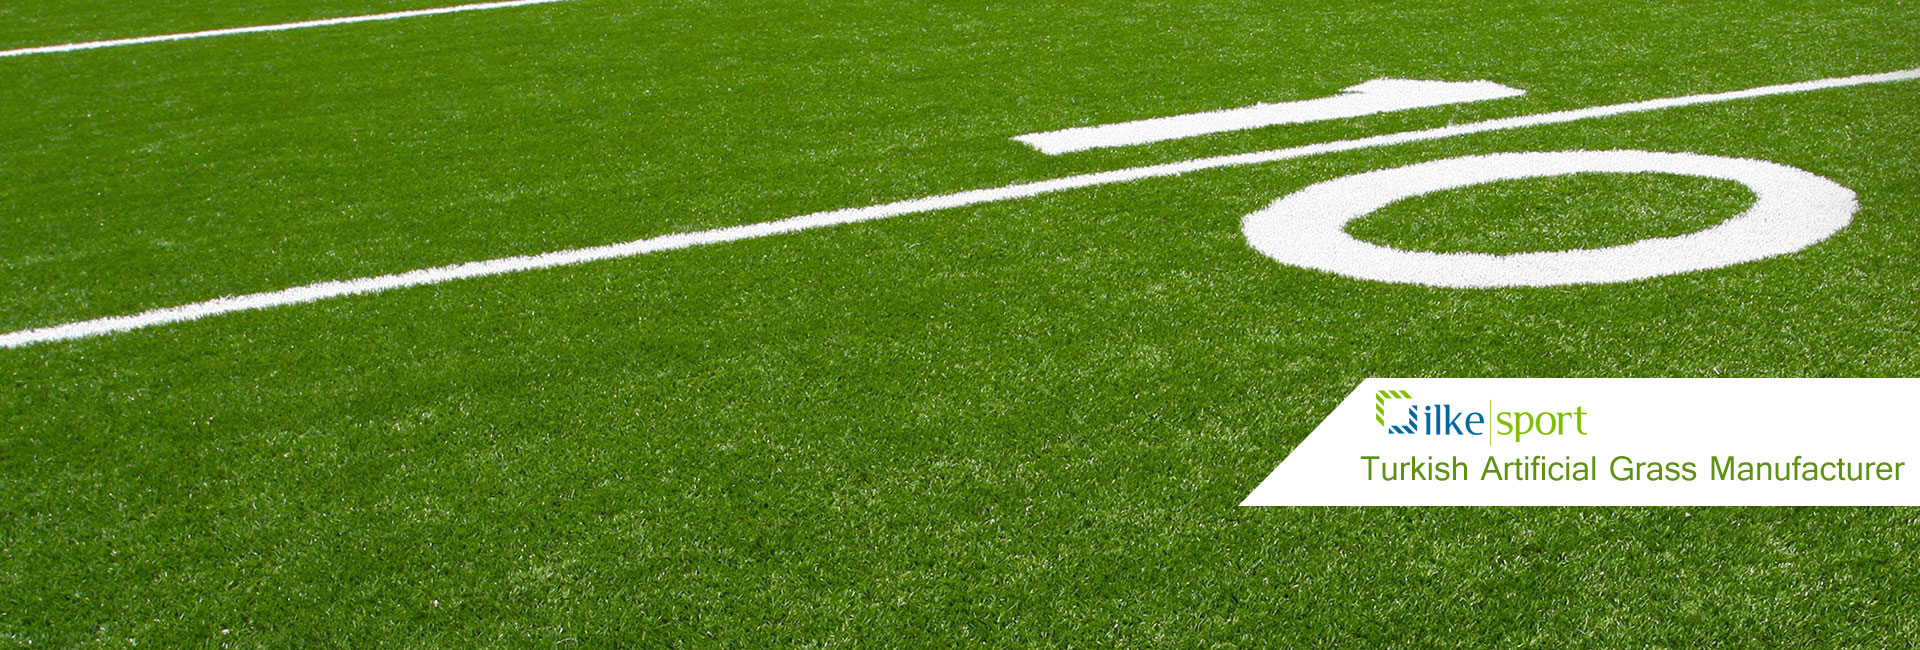 Synthetic Turfs for Sports, Sports Field Construction